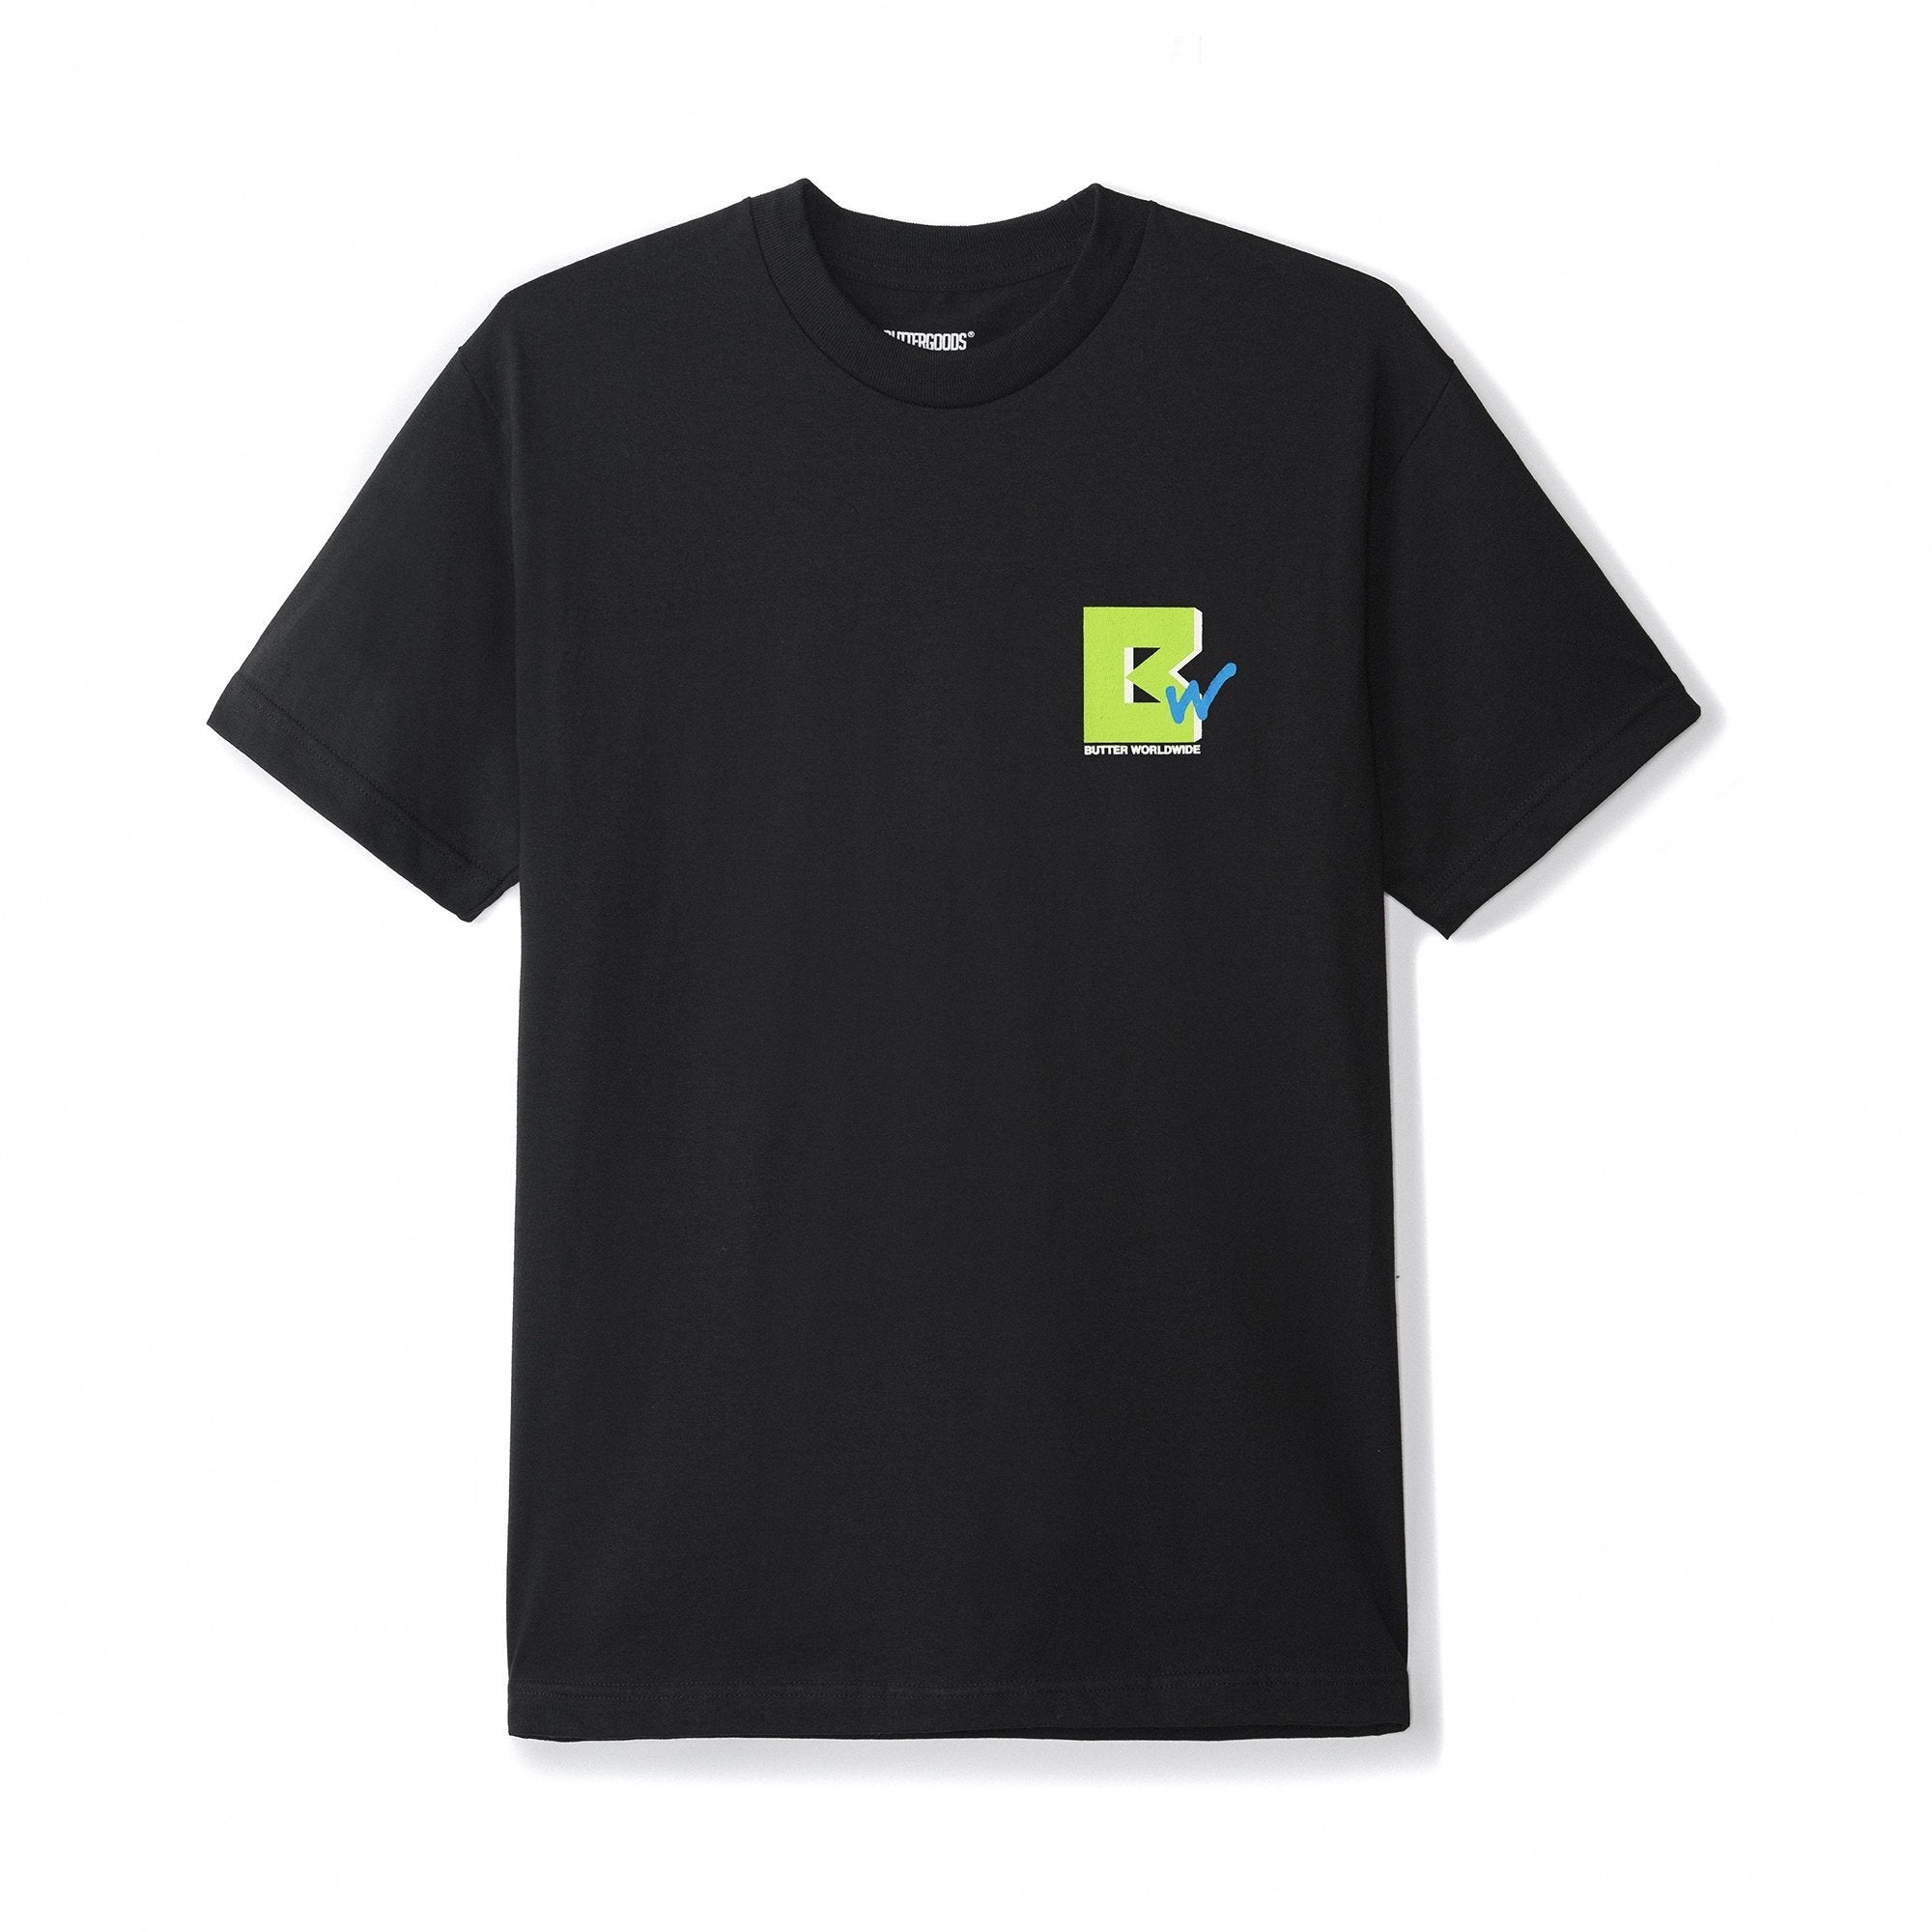 Butter Goods Tv Tee Product Photo #1